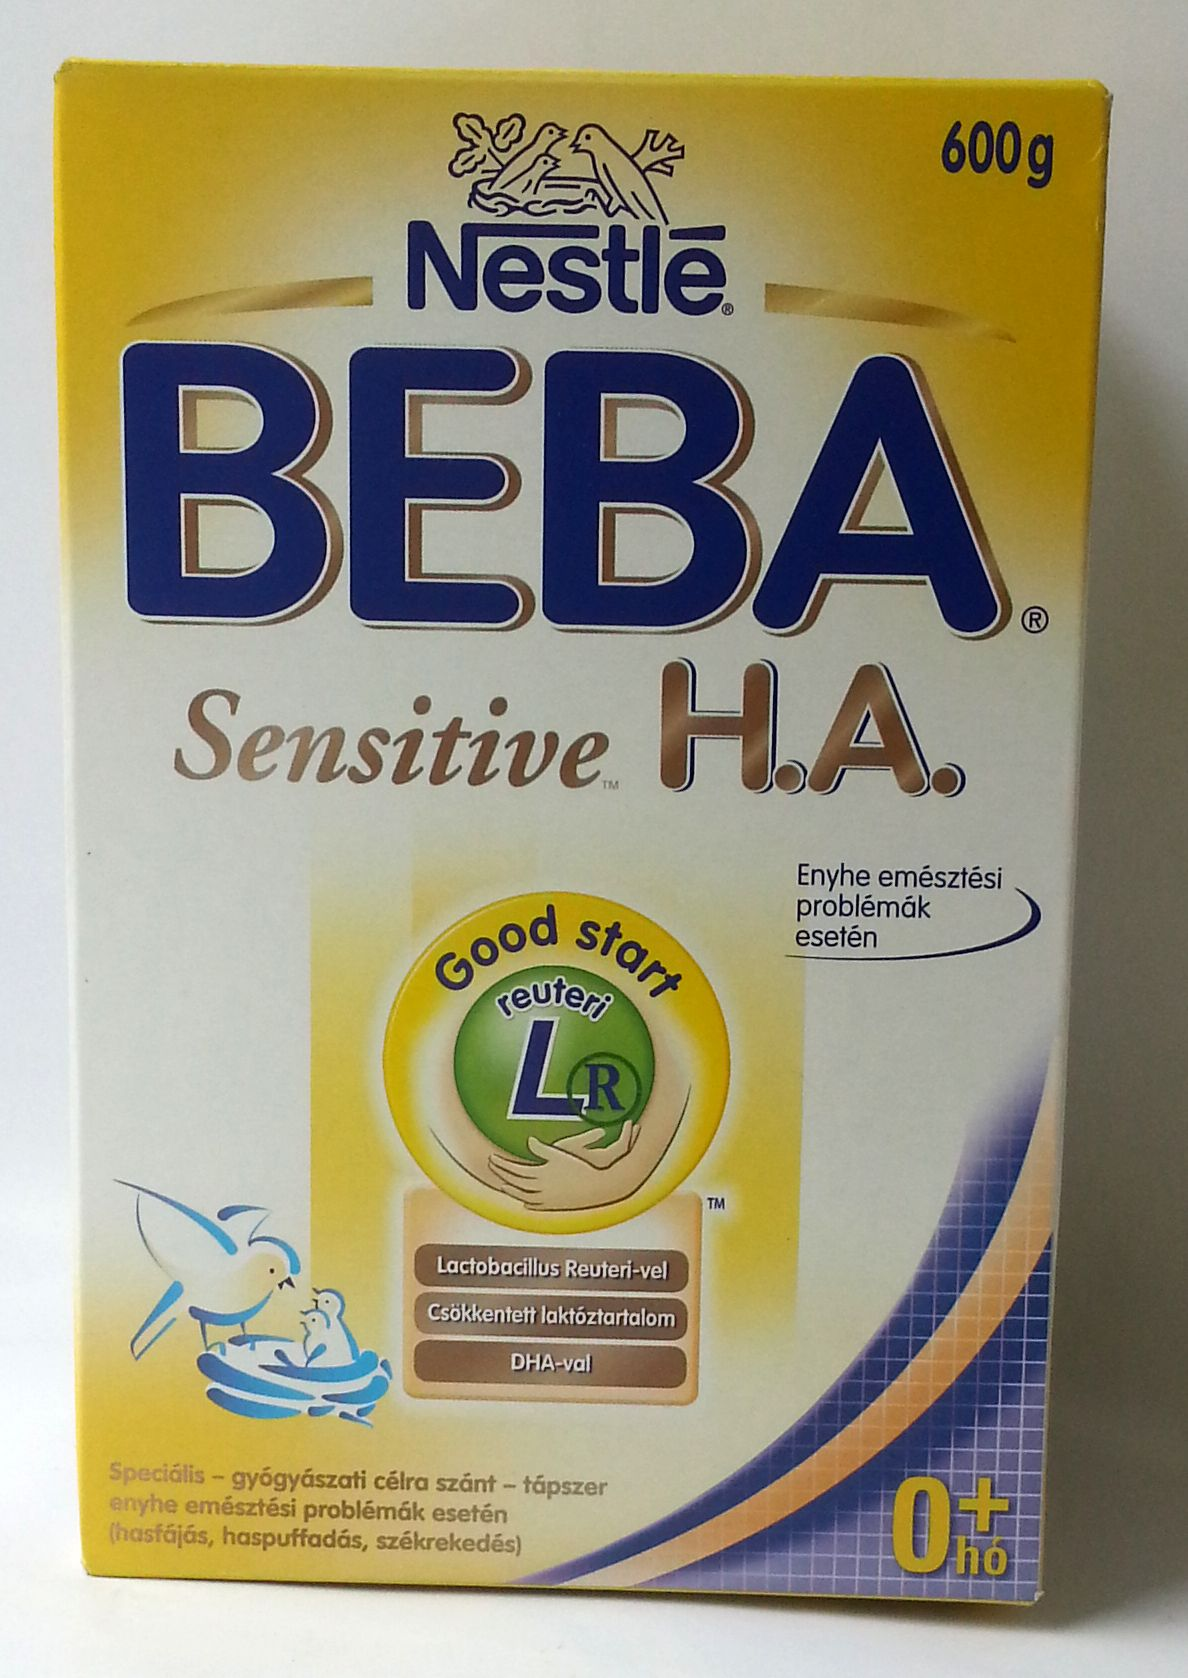 beba ha sensitiv 600g.jpg